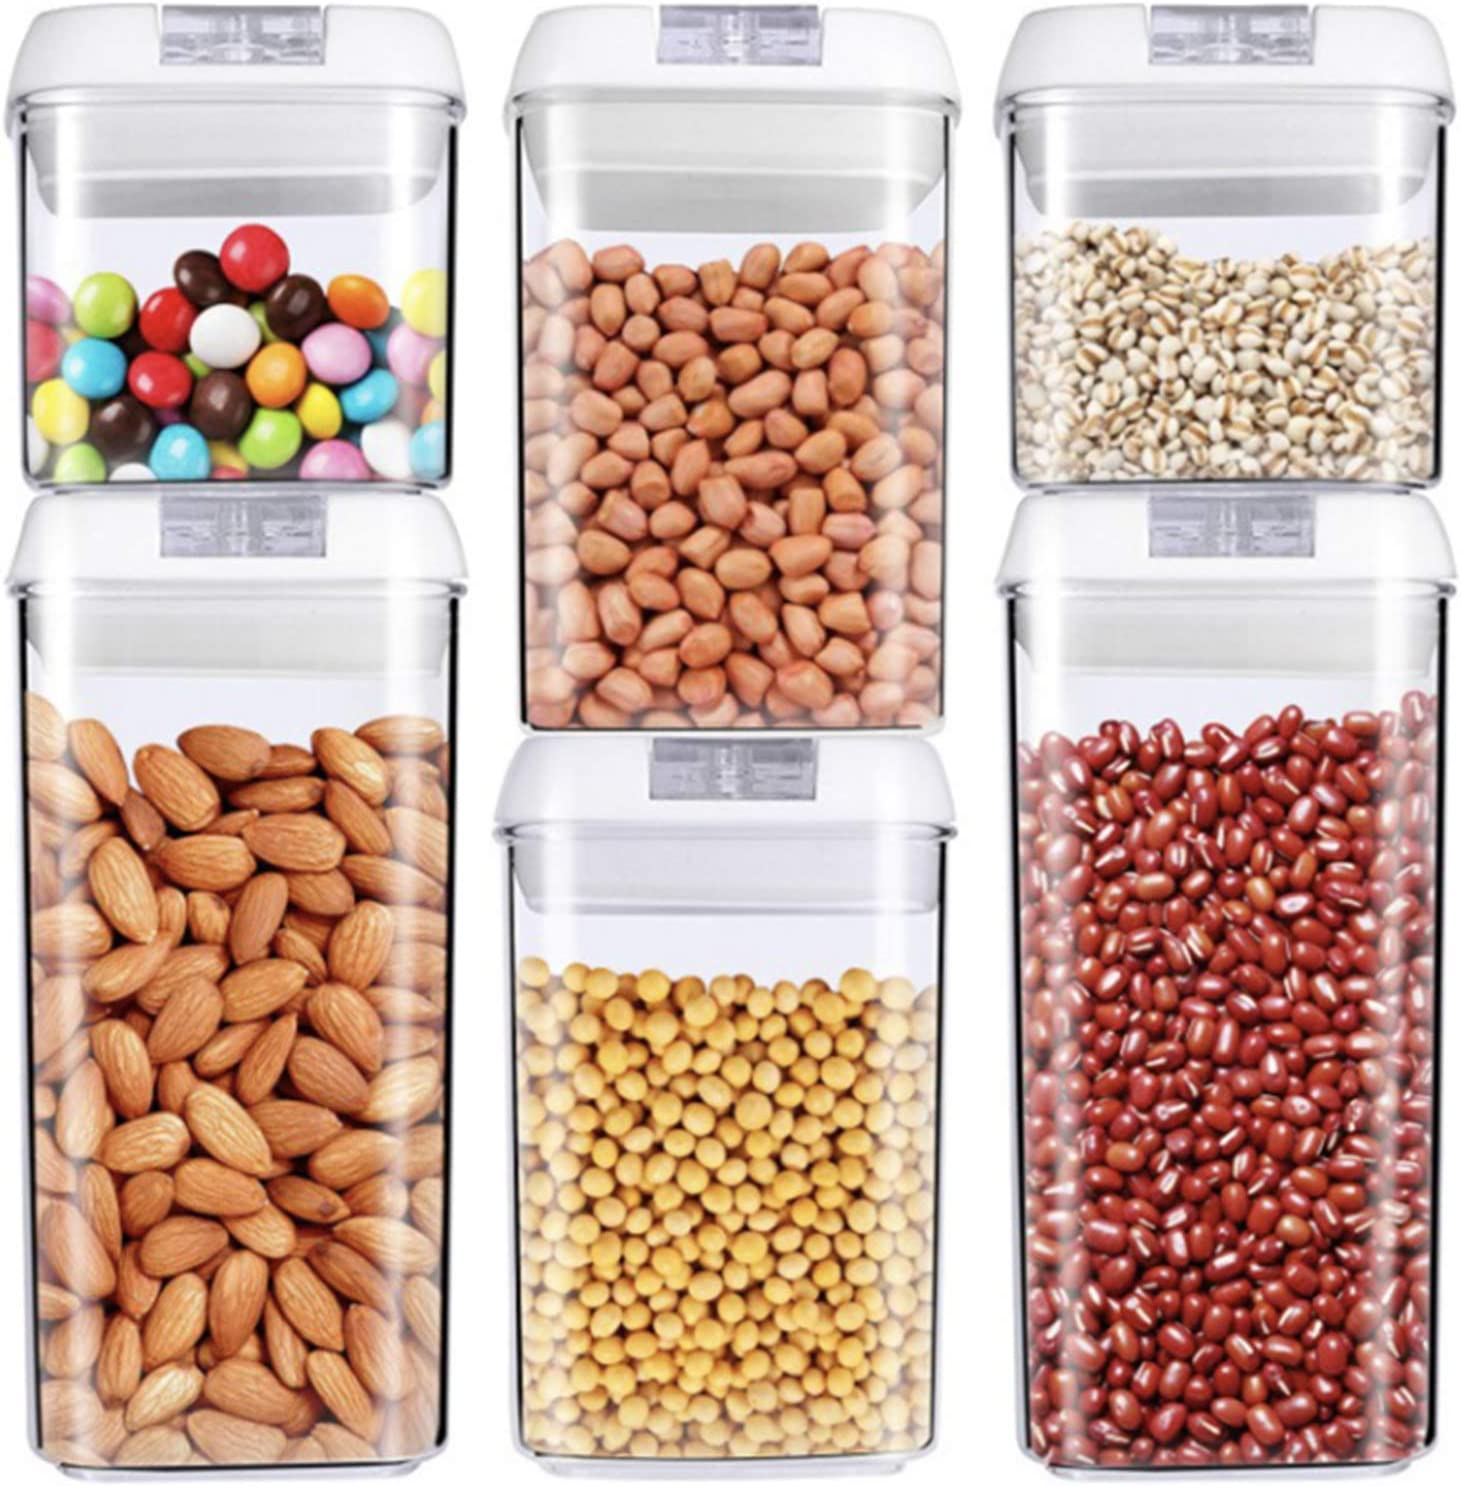 6 Pieces BPA Free High Air-tight Food Storage Containers, Stackable Plastic Cereal Container Storage Set With Lid,Very Suitable For Dried Fruits,Grains and Snacks (2X0.5qt+2X0.8qt+2X1.2qt).